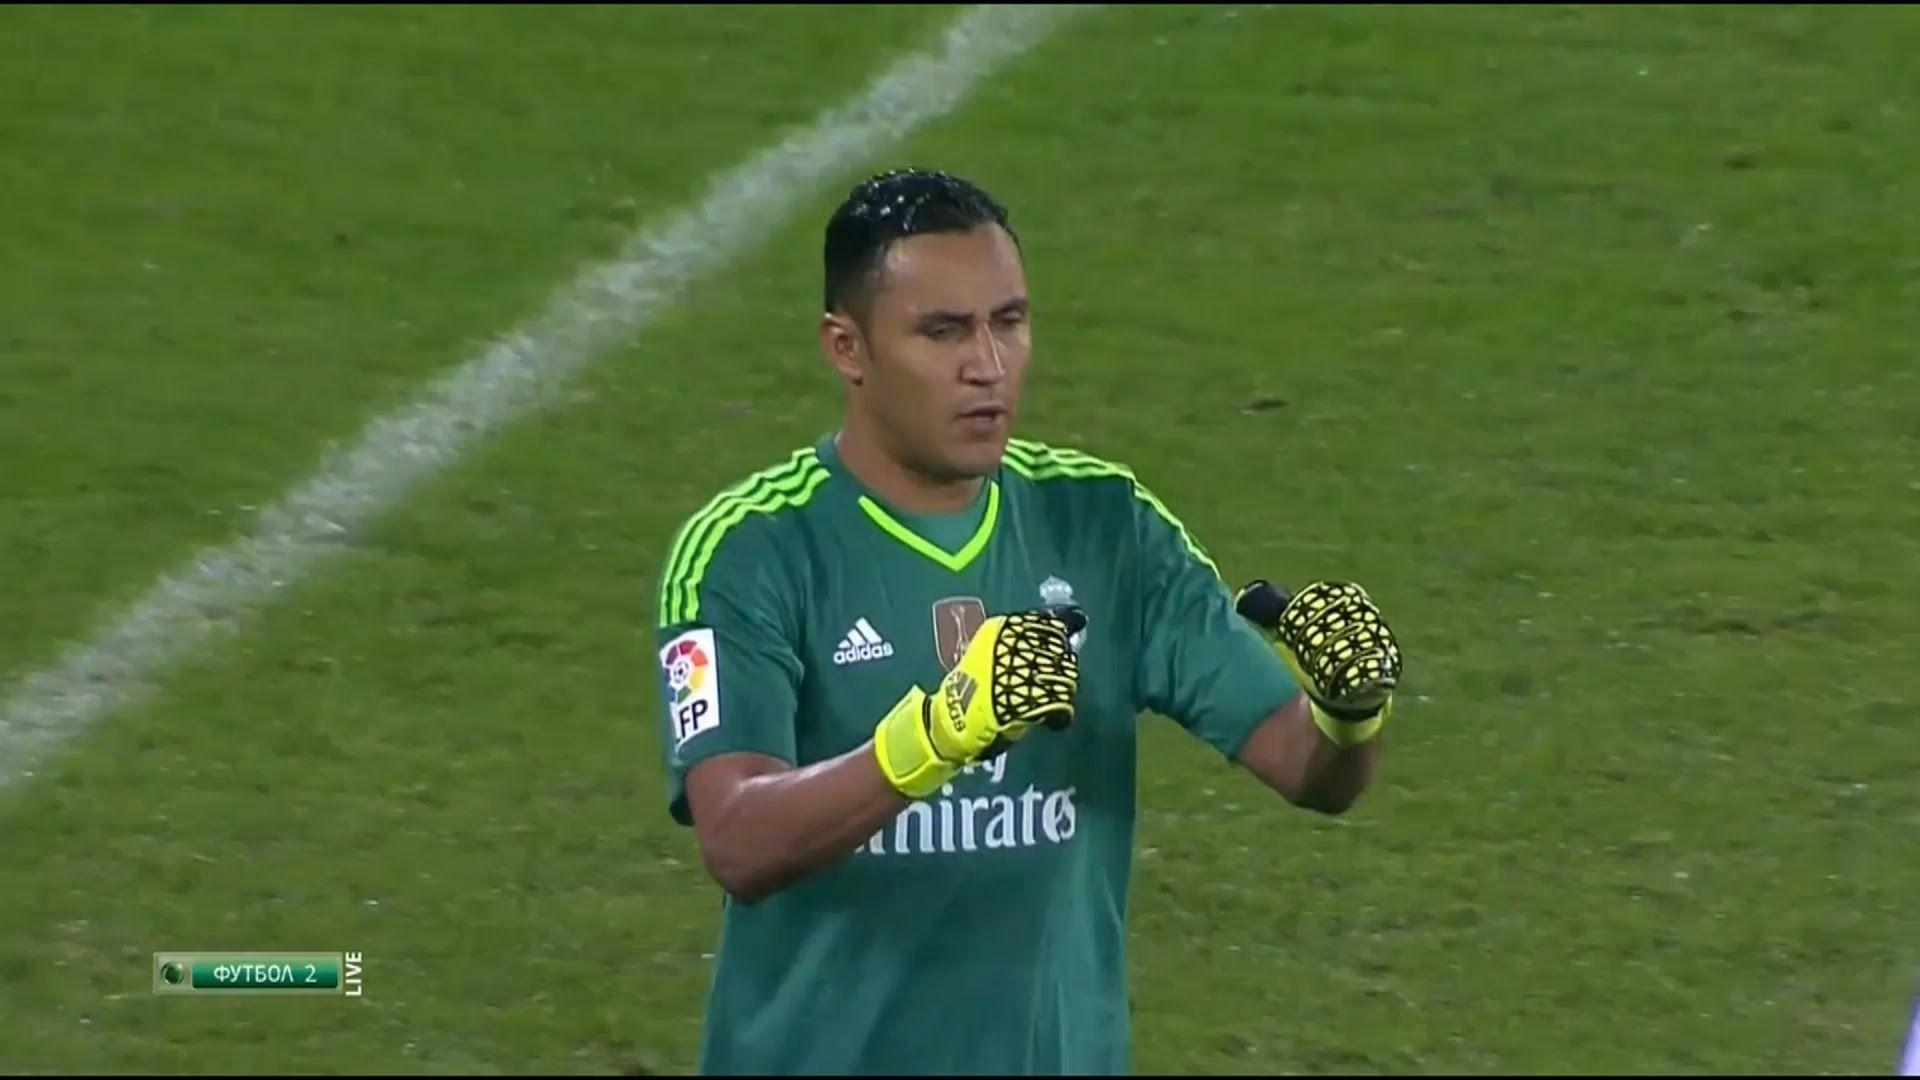 Keylor Navas Vs Athletic Bilbao (Away) 2015-16 HD 720p - YouTube